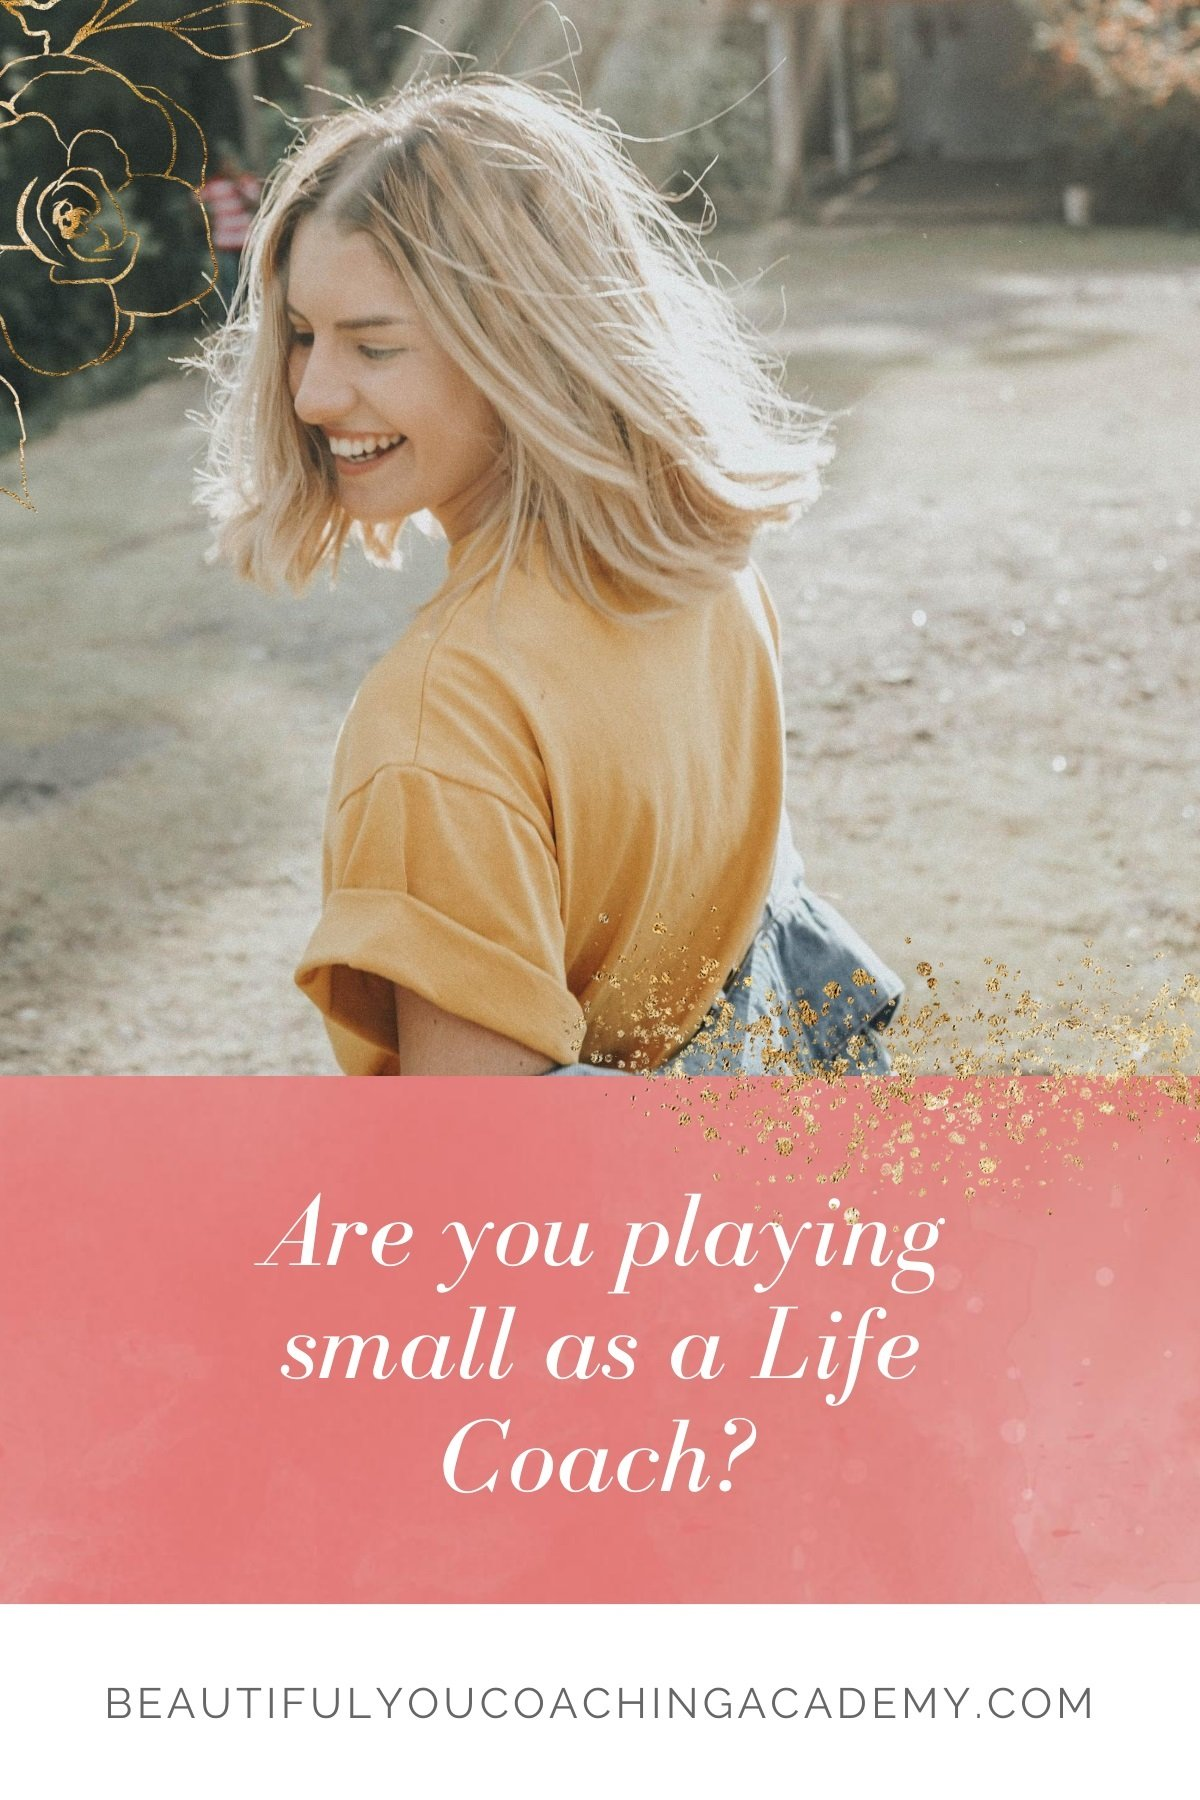 Are You Playing Small as a Life Coach?